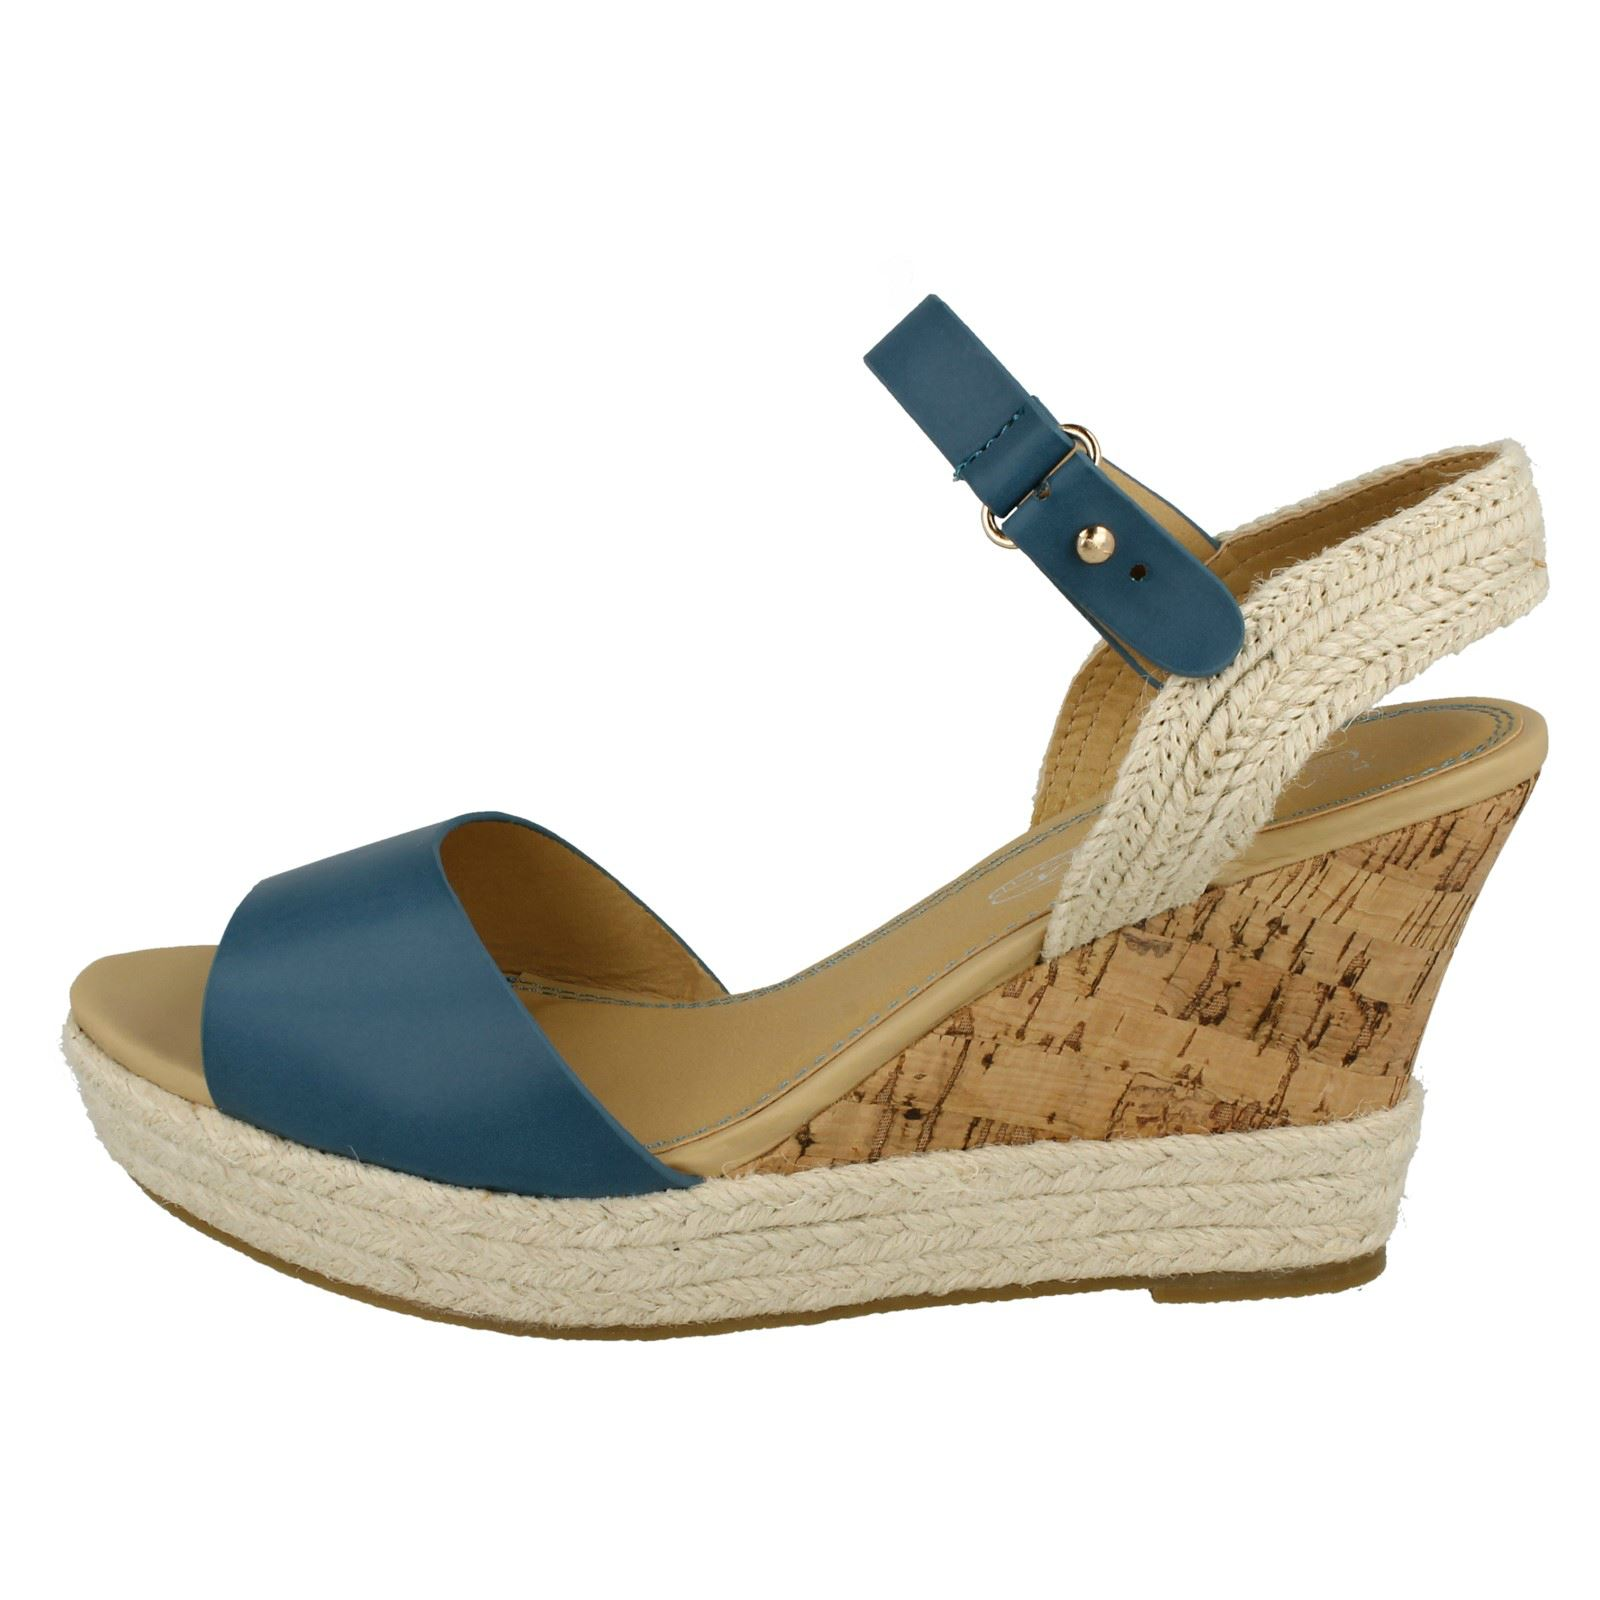 Ladies Spot On High Wedged Ankle Strap Espadrille Sandals